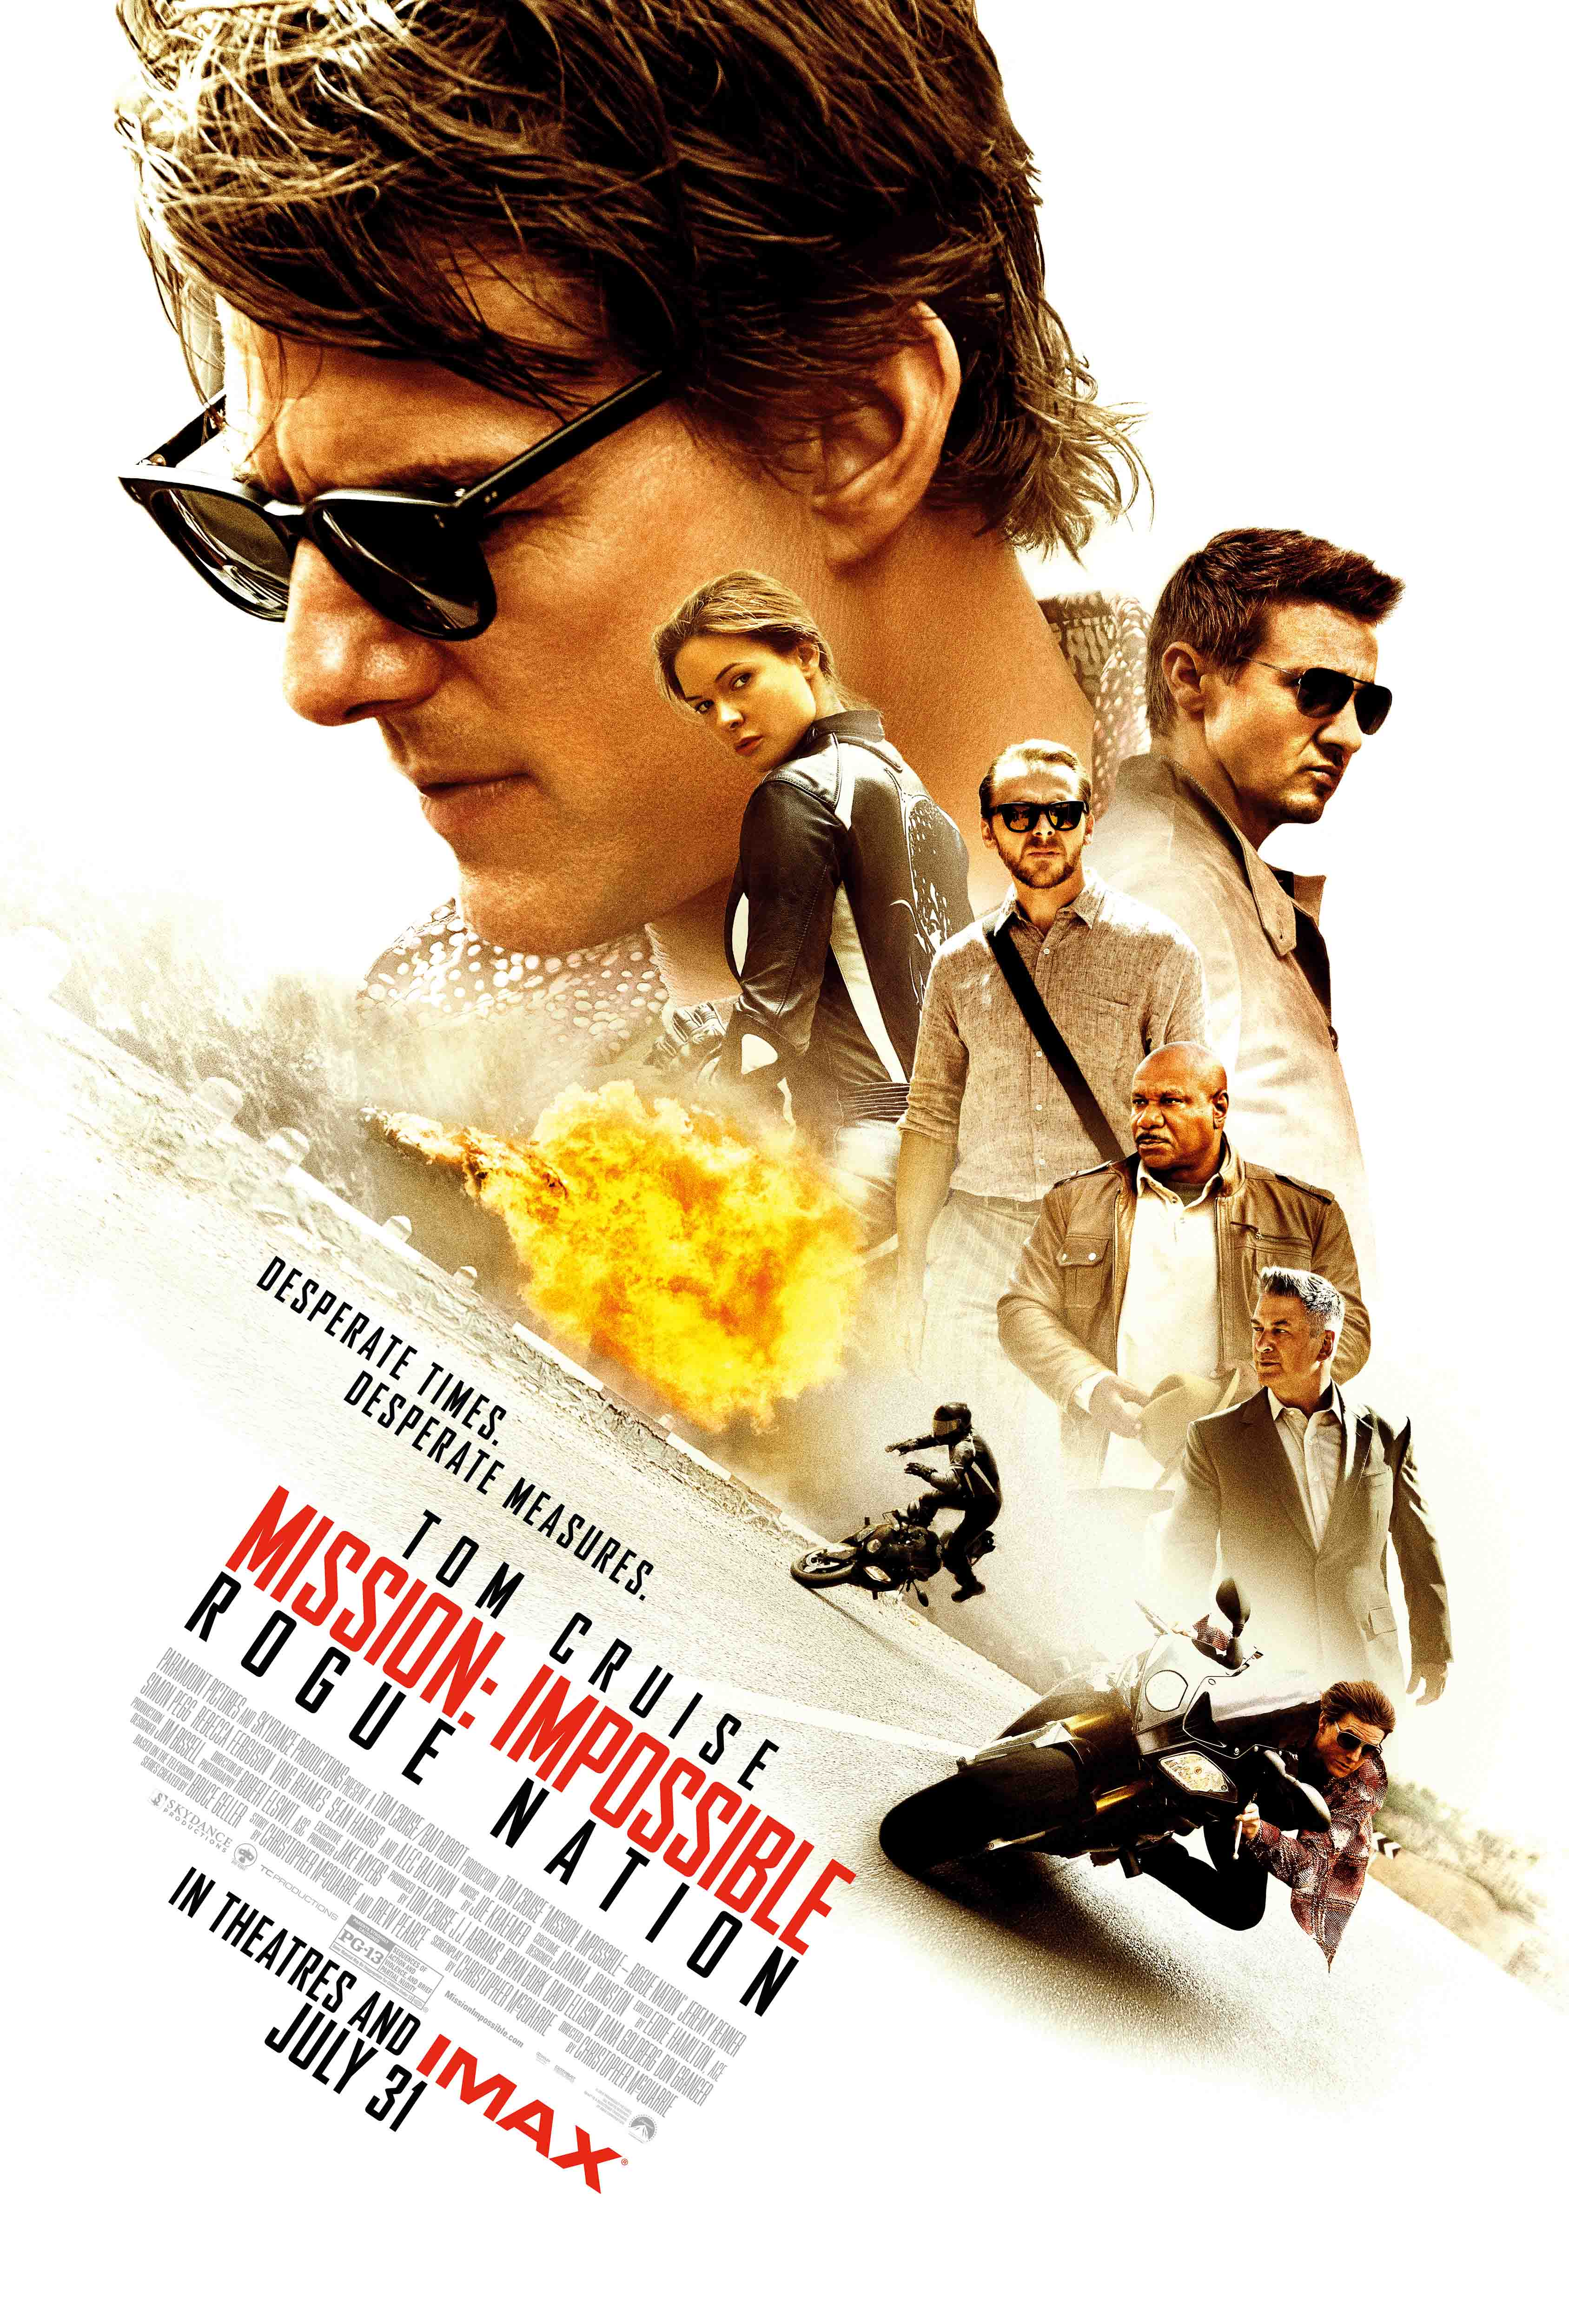 M2015016CIM 碟中谍 mission-impossible-rogue-nation (2015)_3e245112.jpg